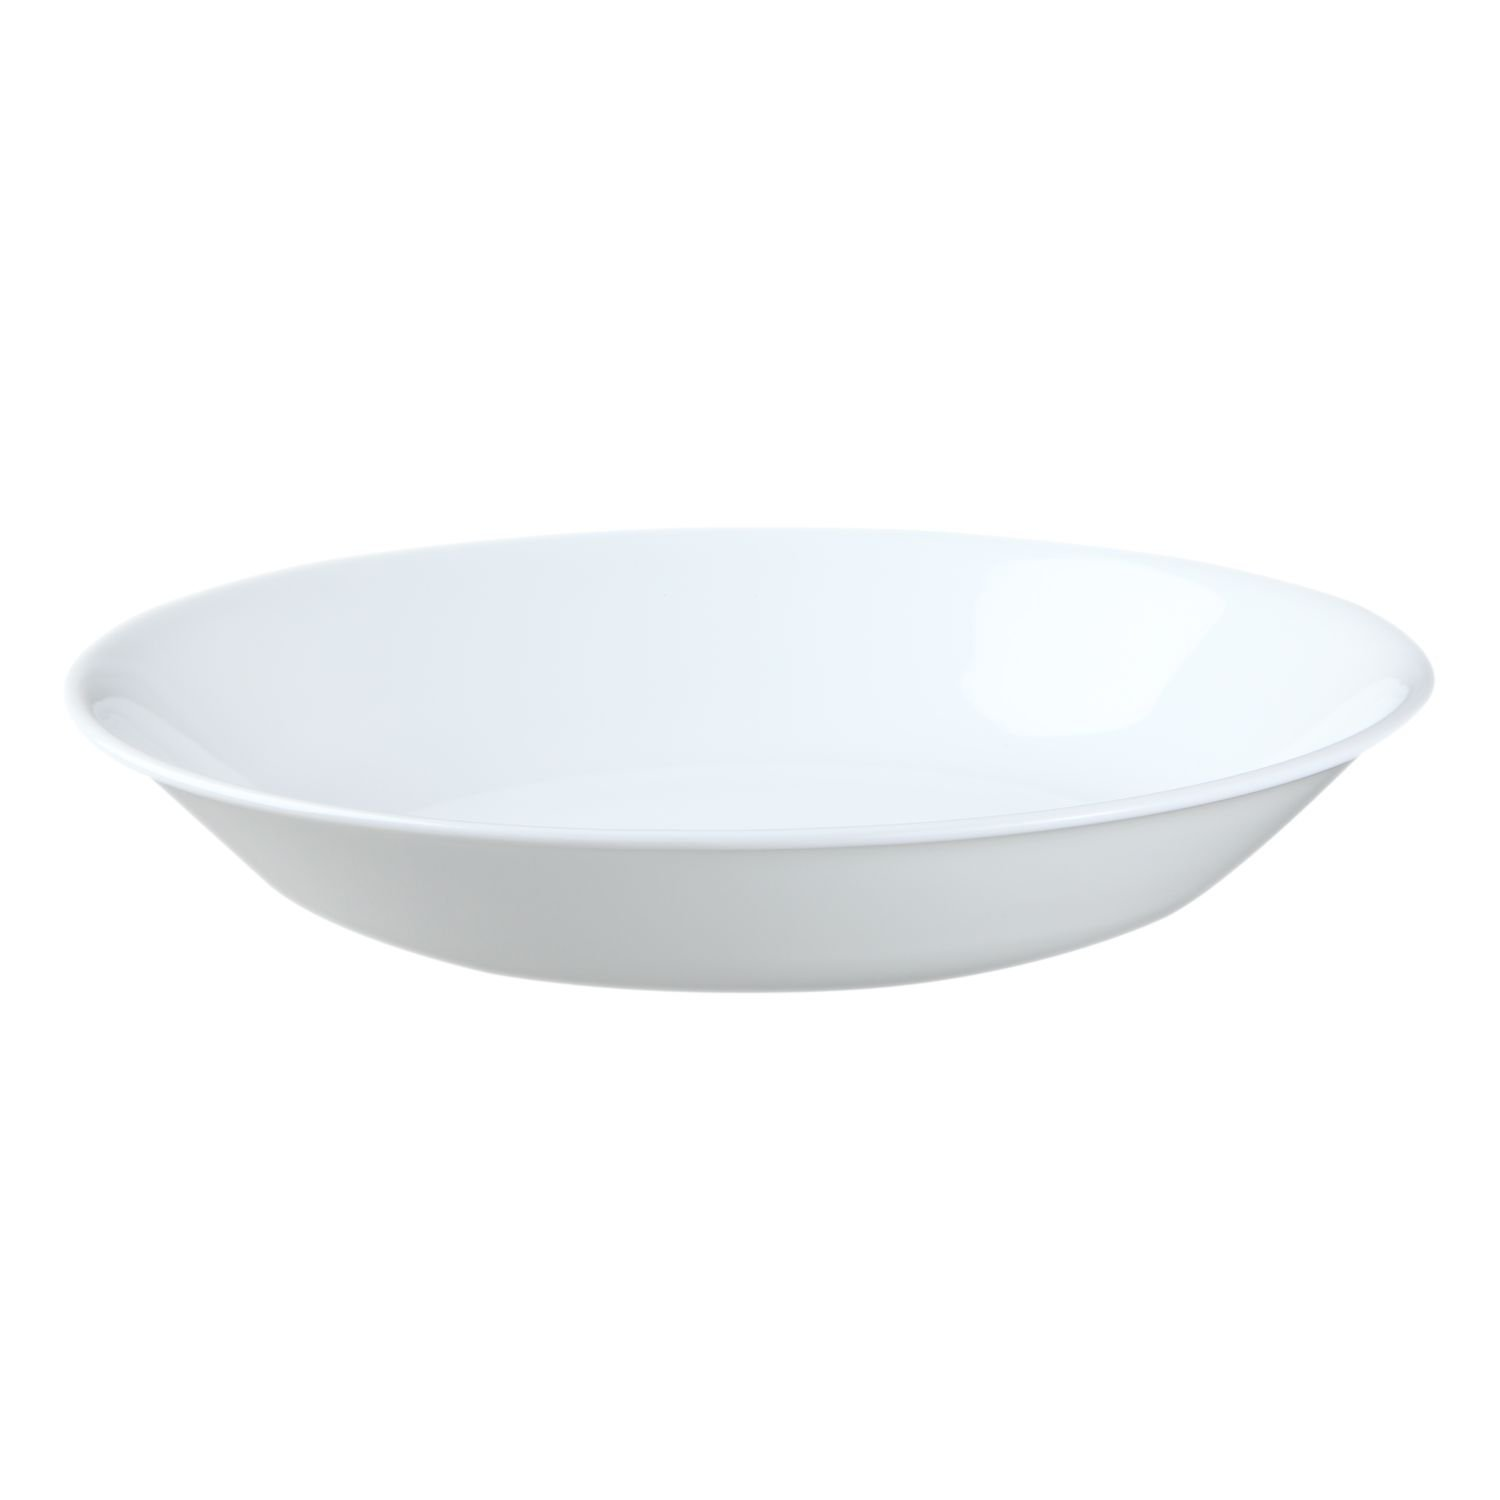 Corelle Winter Frost Serving Bowls White 20 Oz World Kitchen 6017639